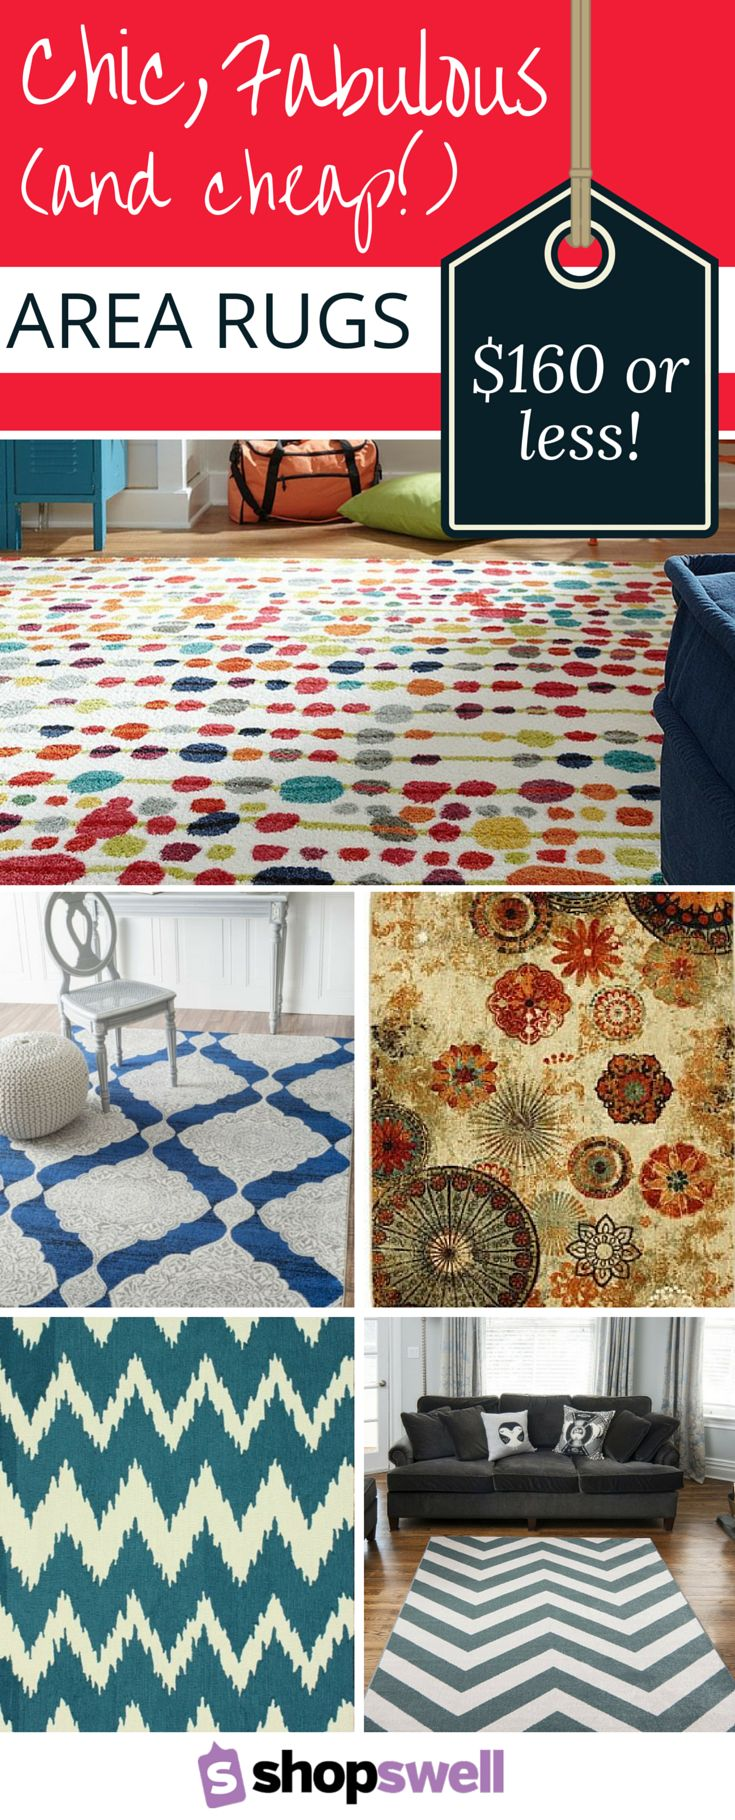 Chic And Cheap Area Rugs For The Living Room Or Bedroom Thankfully With These